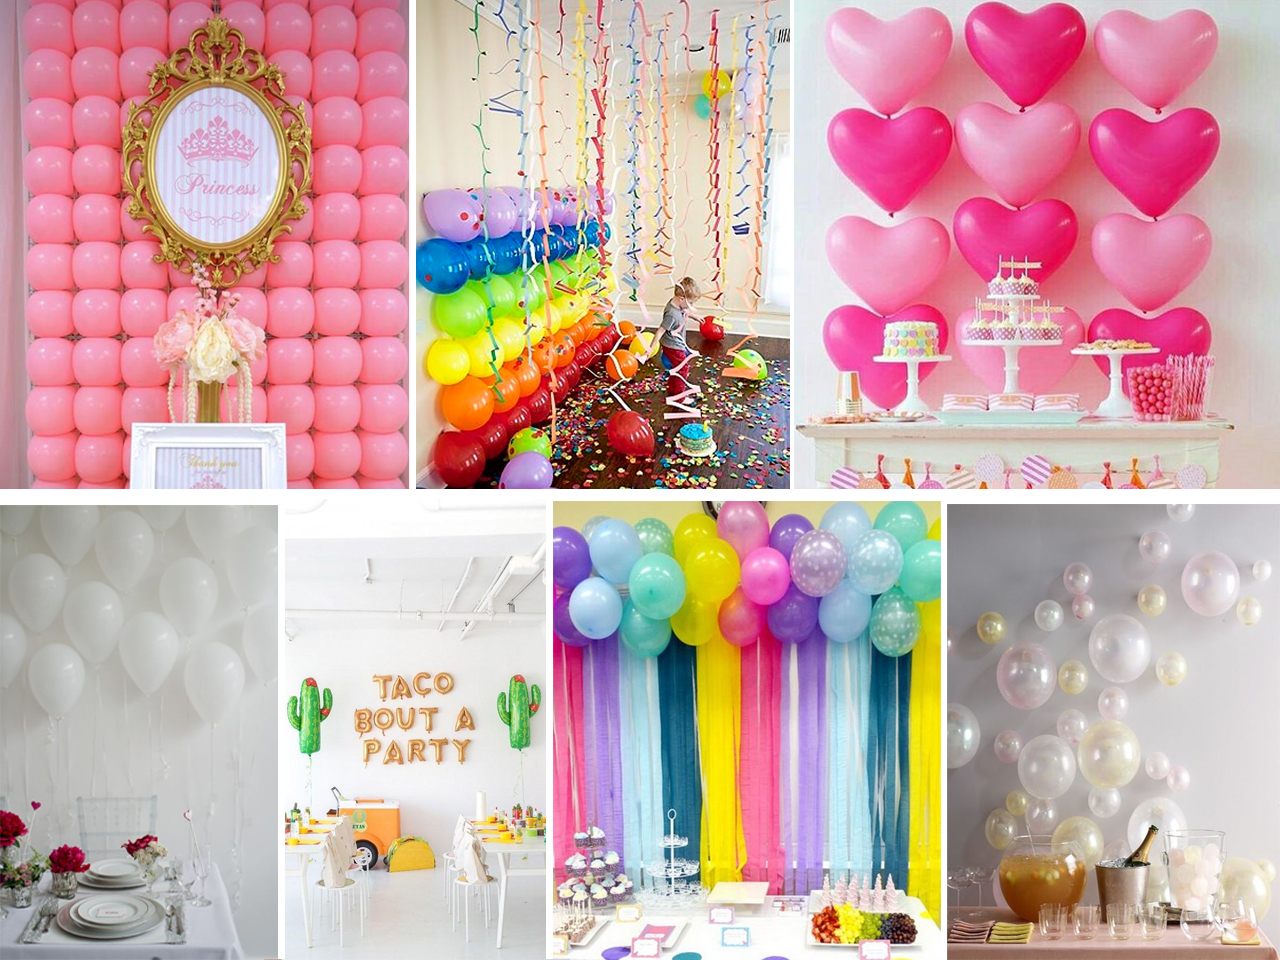 Descubre c mo decorar con globos con estas fant sticas ideas - Como decorar techos ...